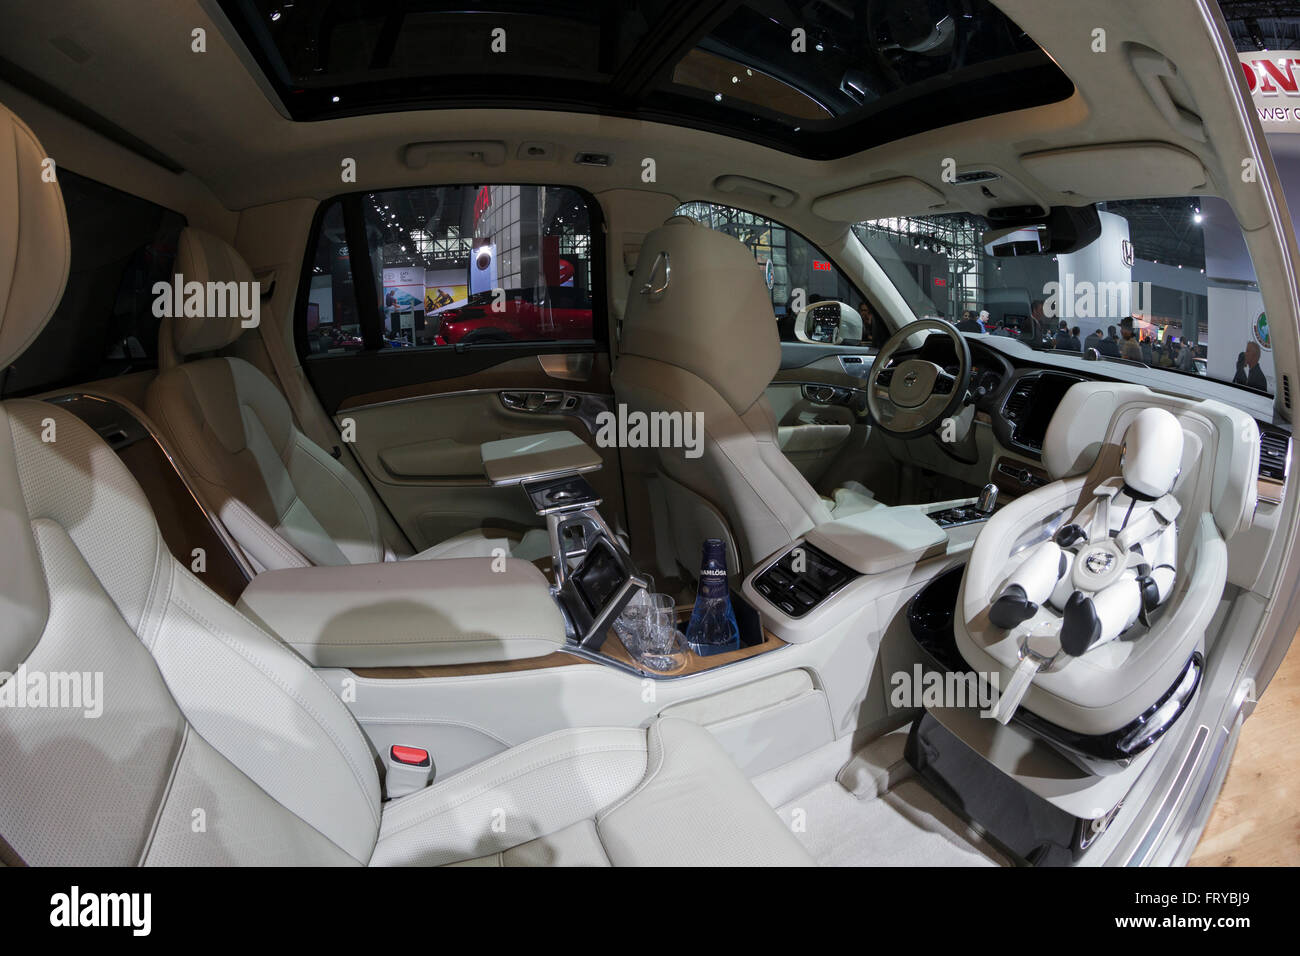 volvo xc90 interior 2016. new york ny usa march 24 2016 interior of volvo xc90 t6 suv on display at international auto show jacob javits center xc90